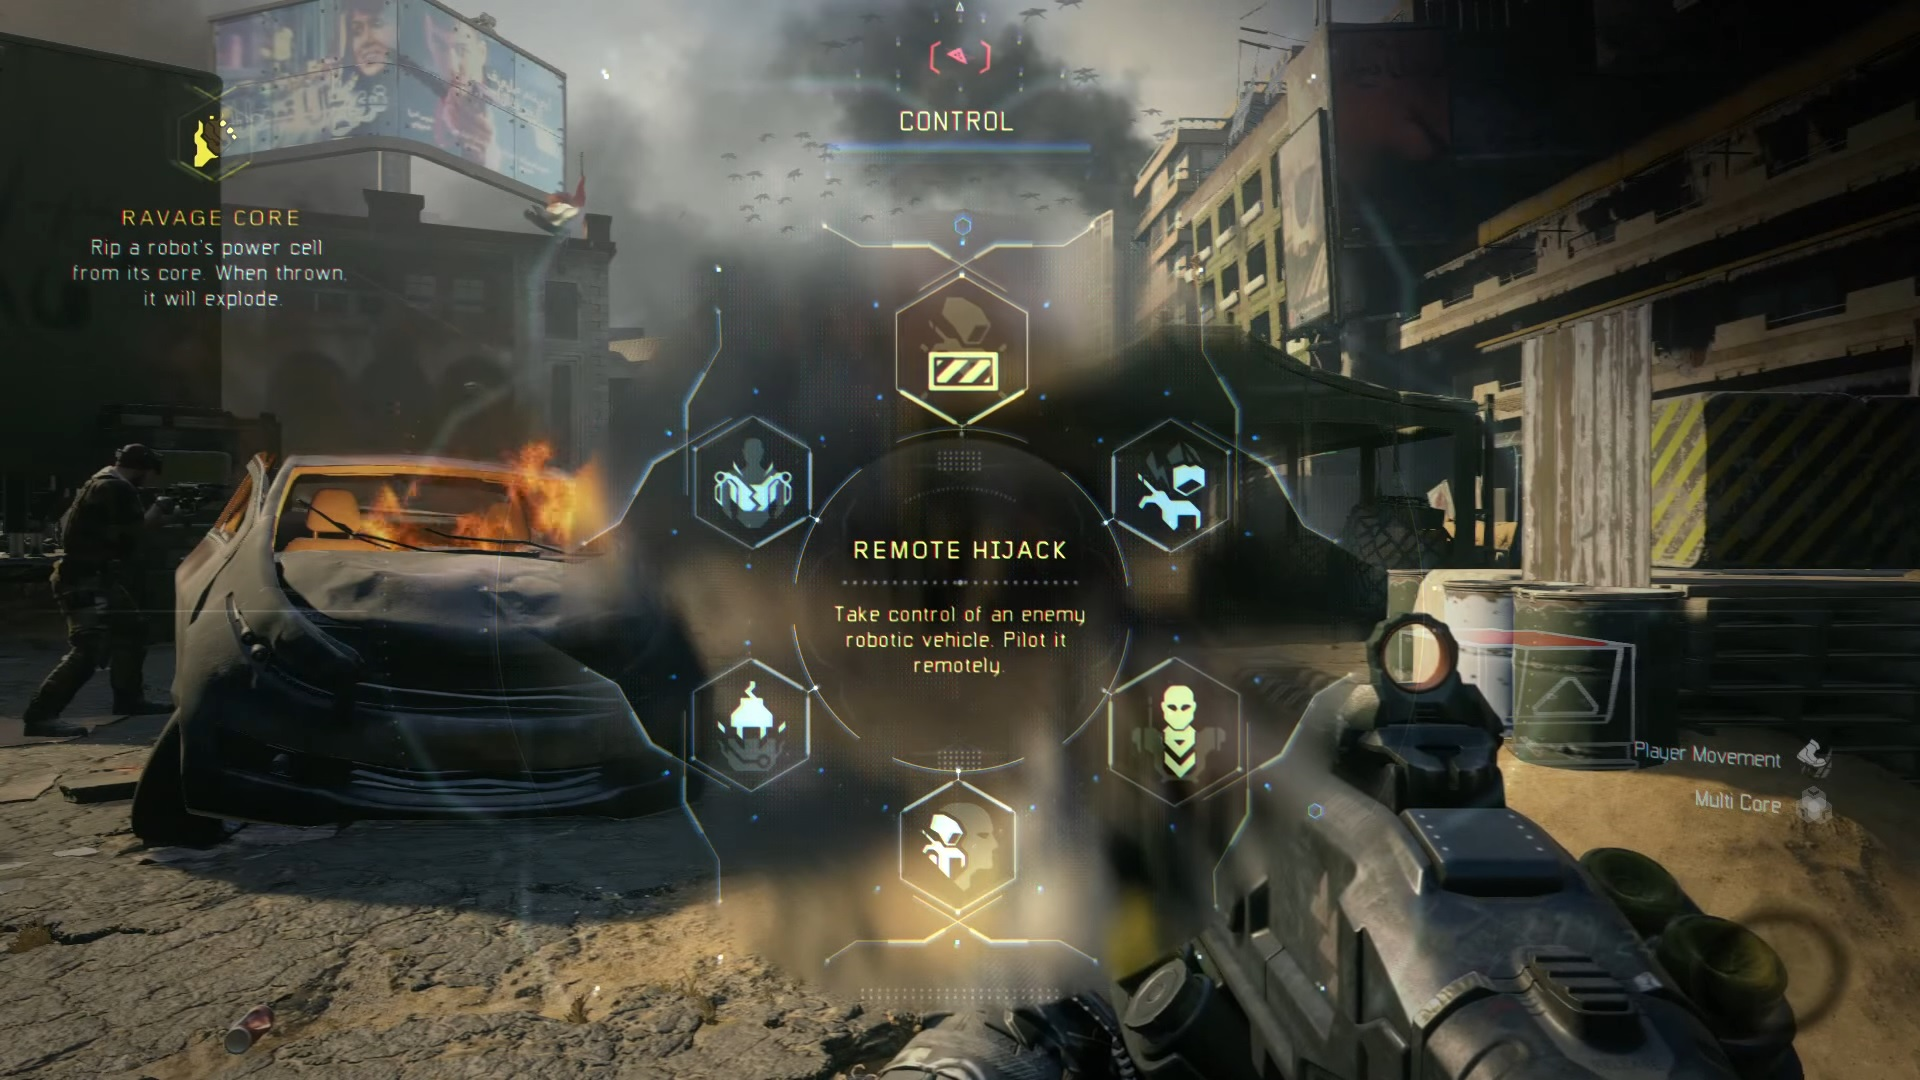 Call of duty black ops 3 download compressed | Download Call